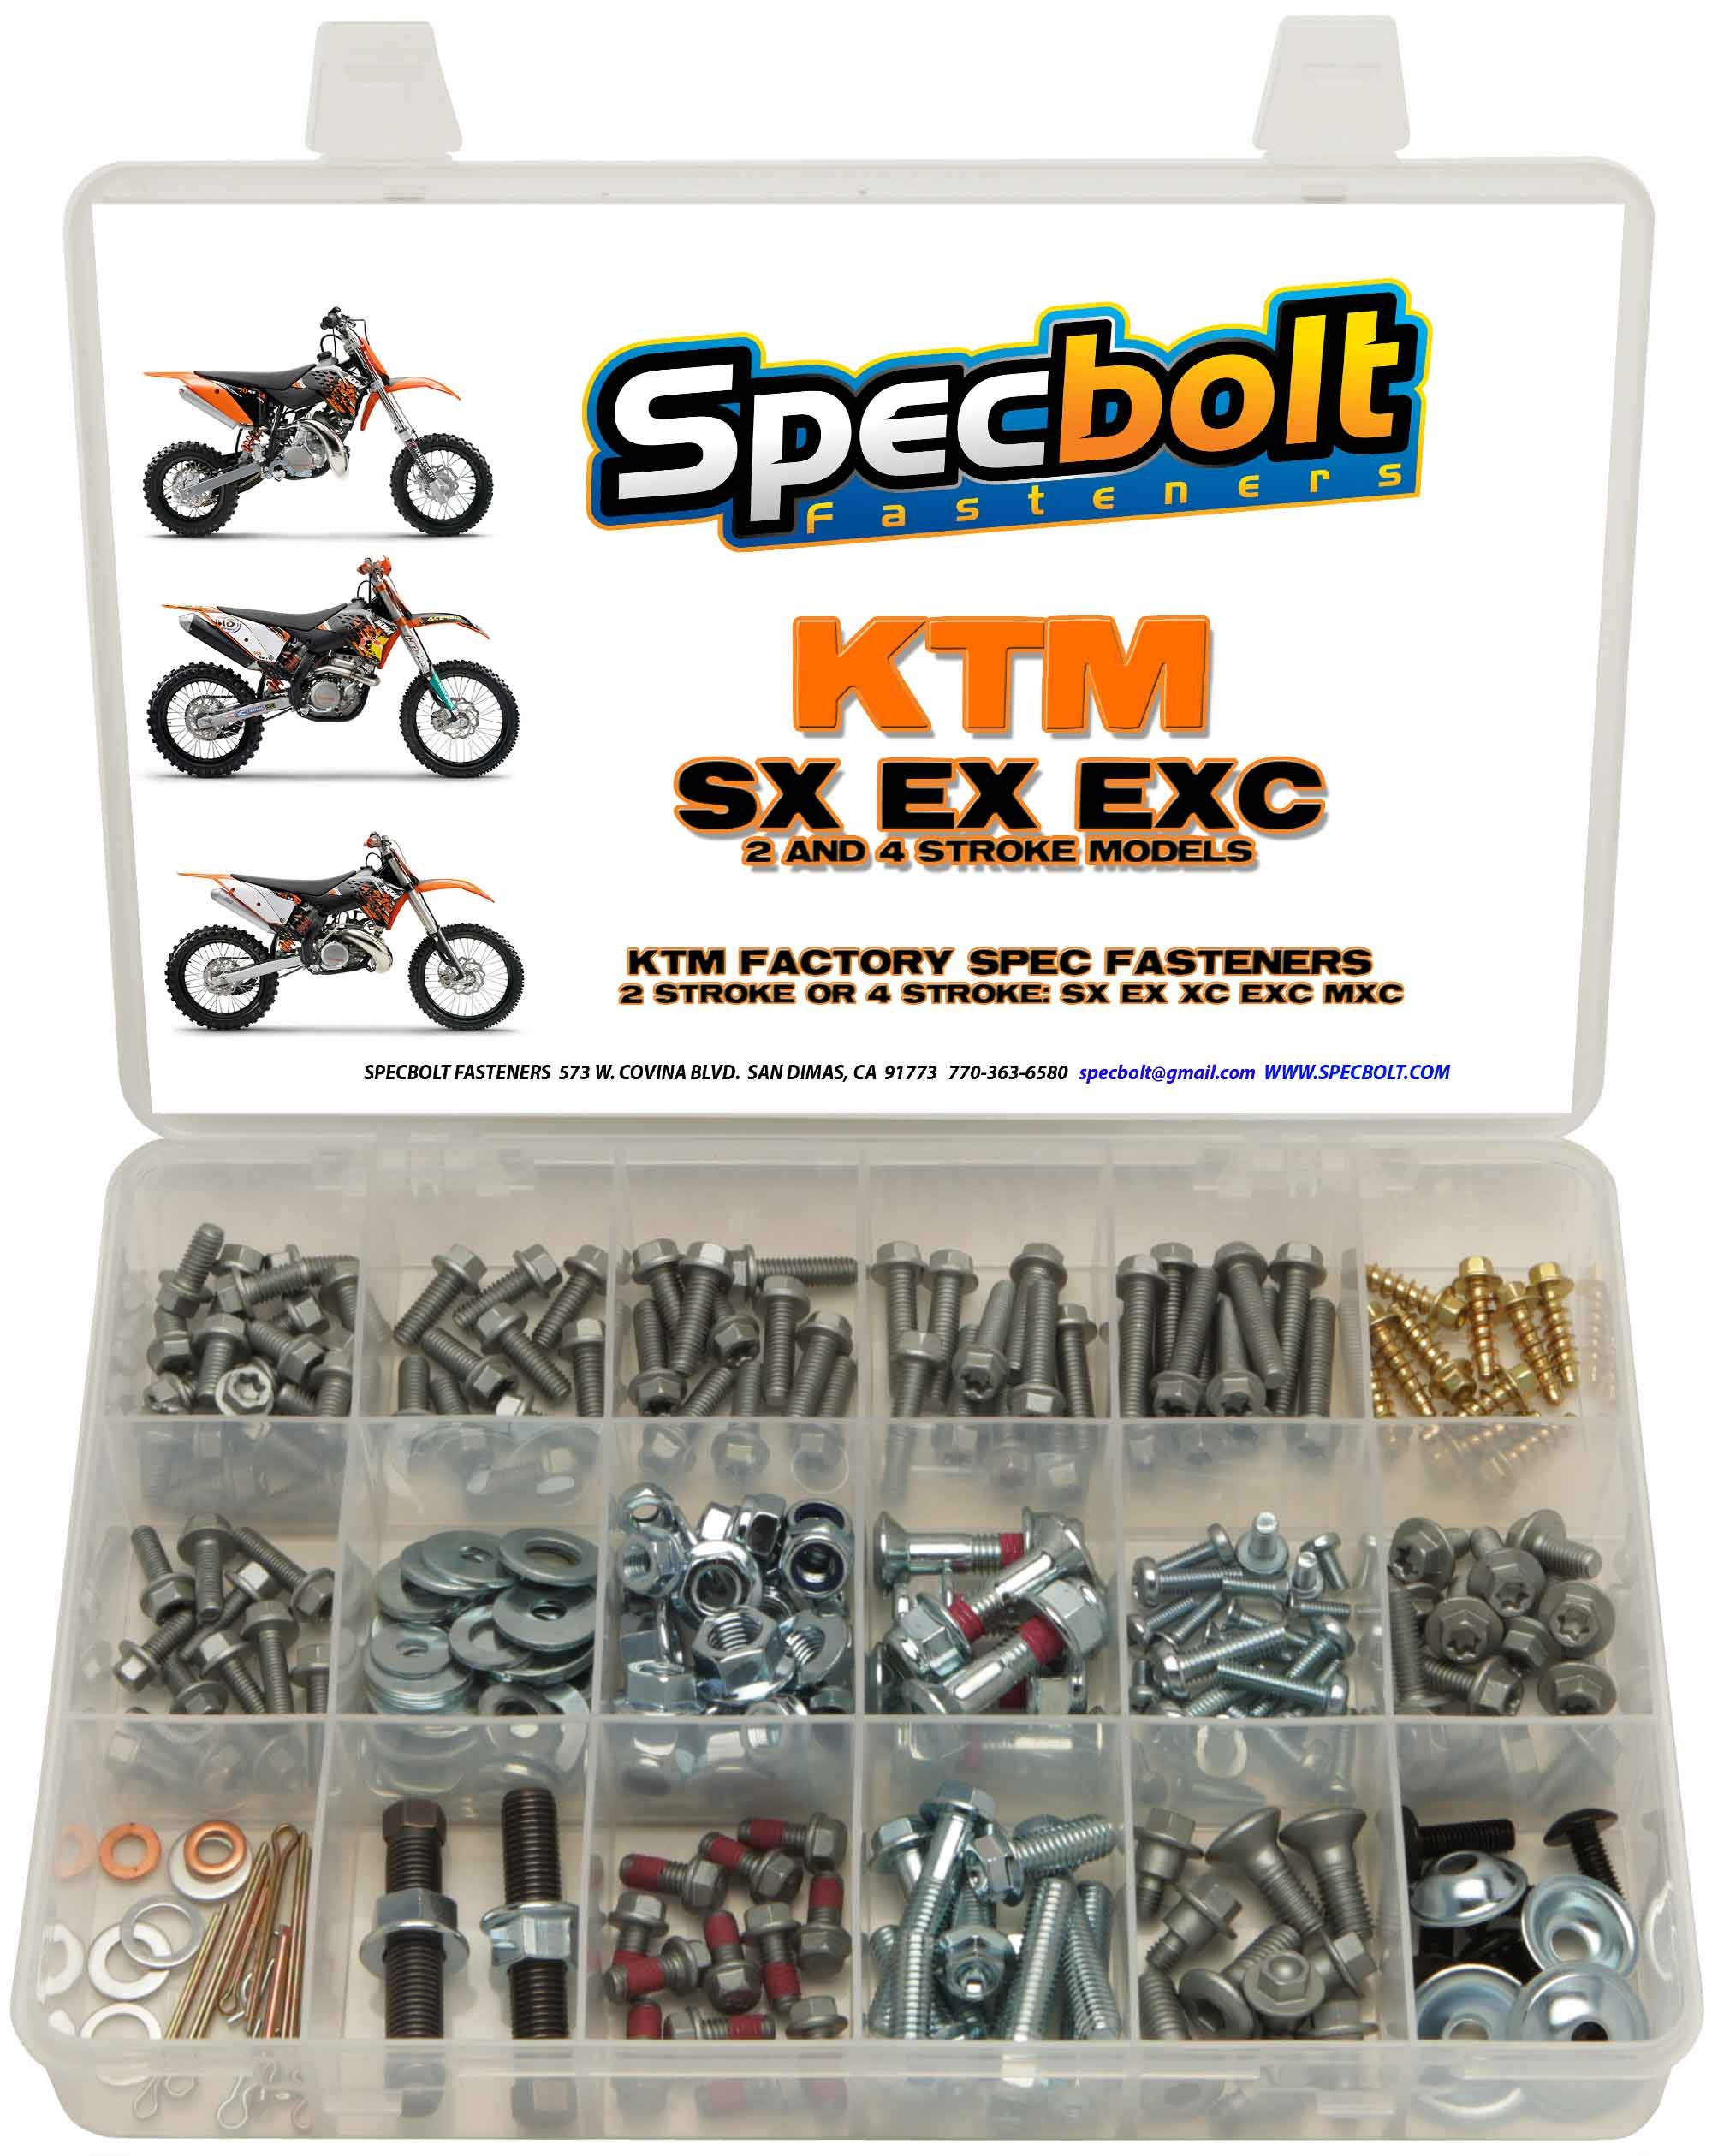 250pc Specbolt Brand Bolt Kit for Maintenance Upkeep of KTM SX EX EXC MX Dirtbike OEM Spec Fastener. This Includes 2 Strokes: 50 60 65 85 105 125 250 300 550 4 Strokes: 250 350 400 450 500 520 525 by Specbolt Fasteners